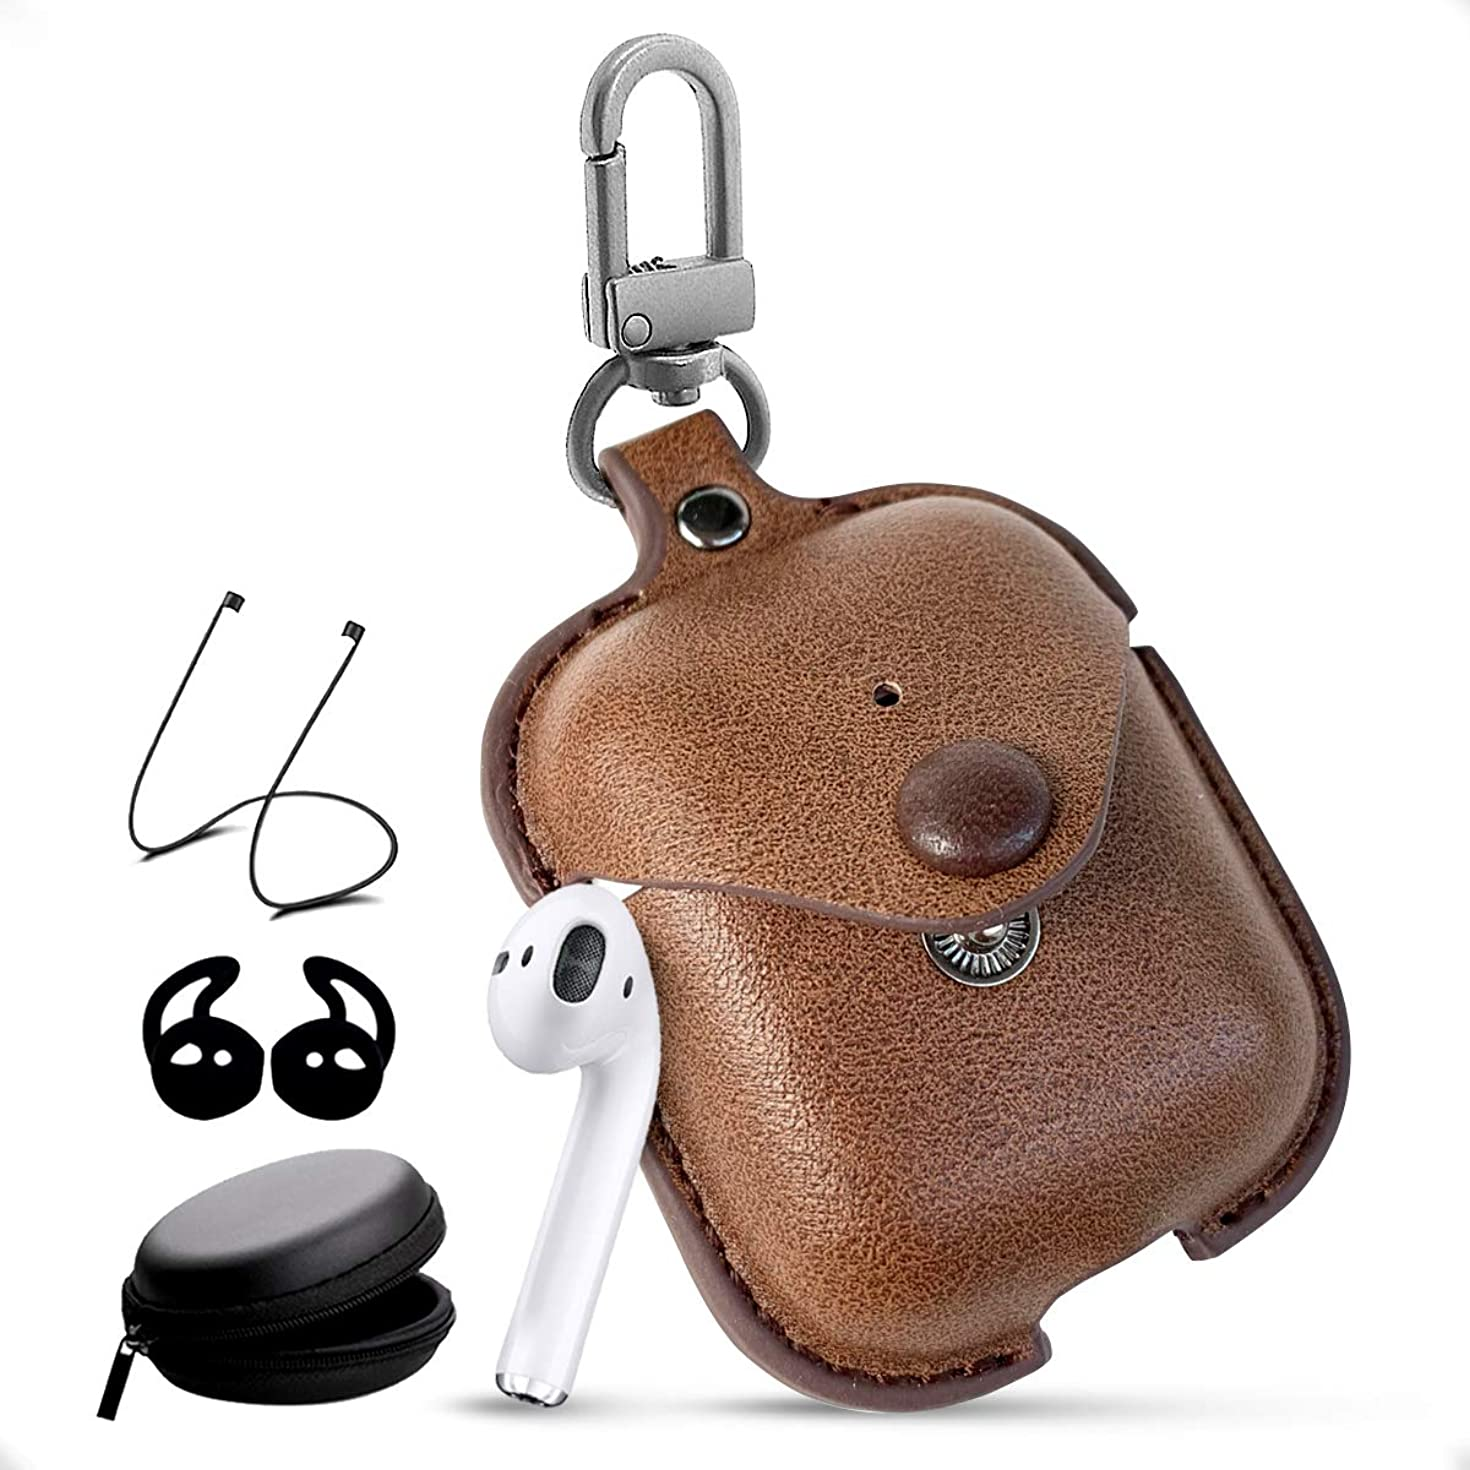 Leather Airpods 2 Case with Keychain Accessories Kits and Earbud Case Airpod Strap String Compatible with Apple Airpods Wireless Charging Case 1/2 (Brown)